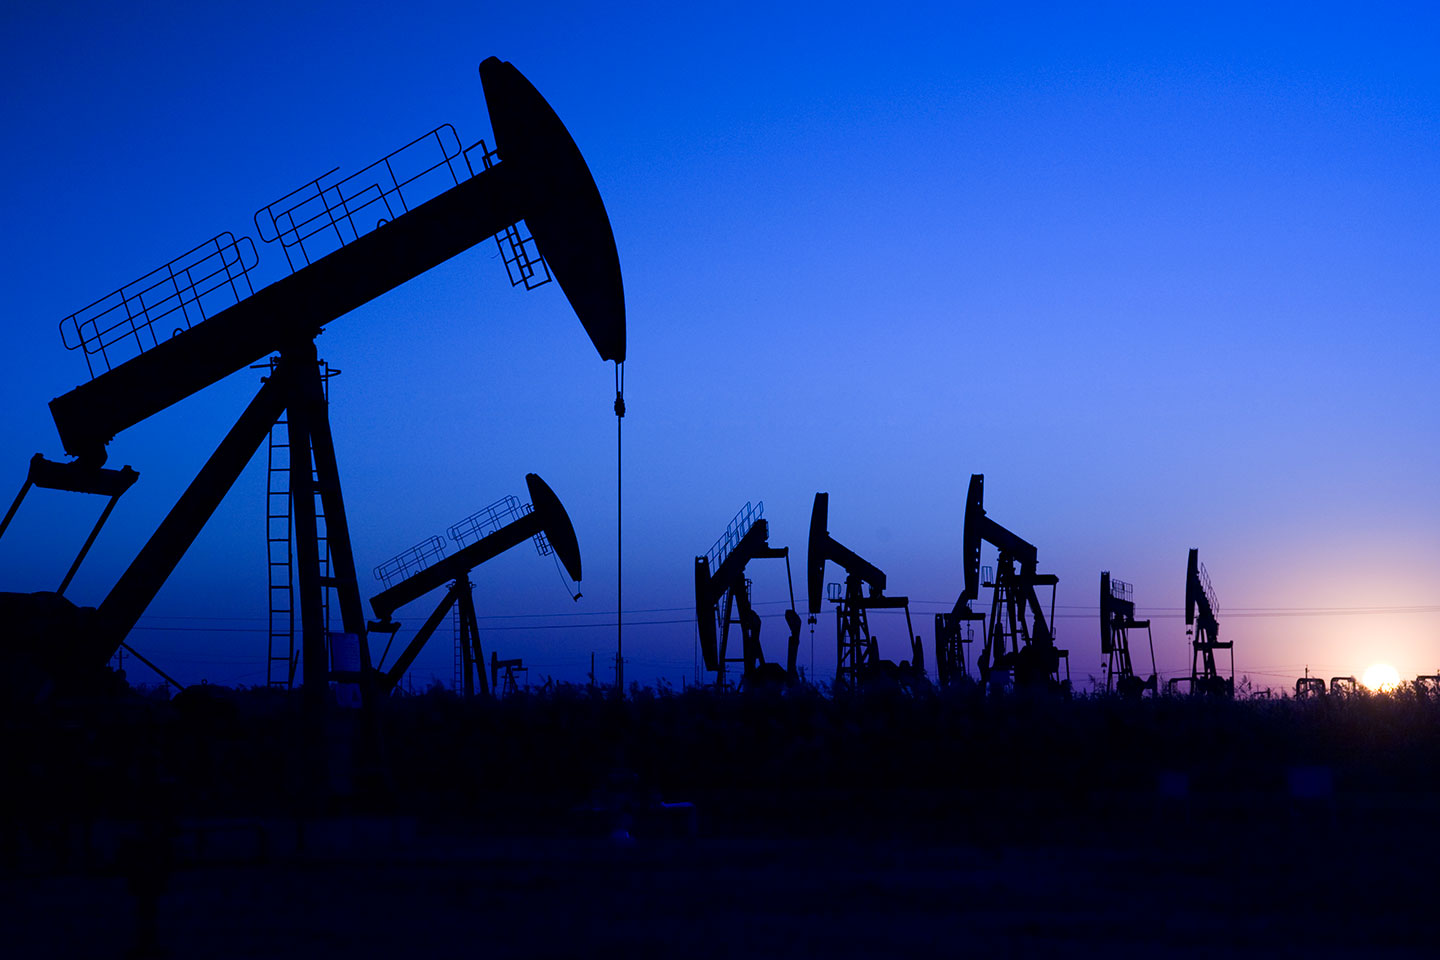 Brent oil price crossed the barrier of 75 United States dollars  per barrel